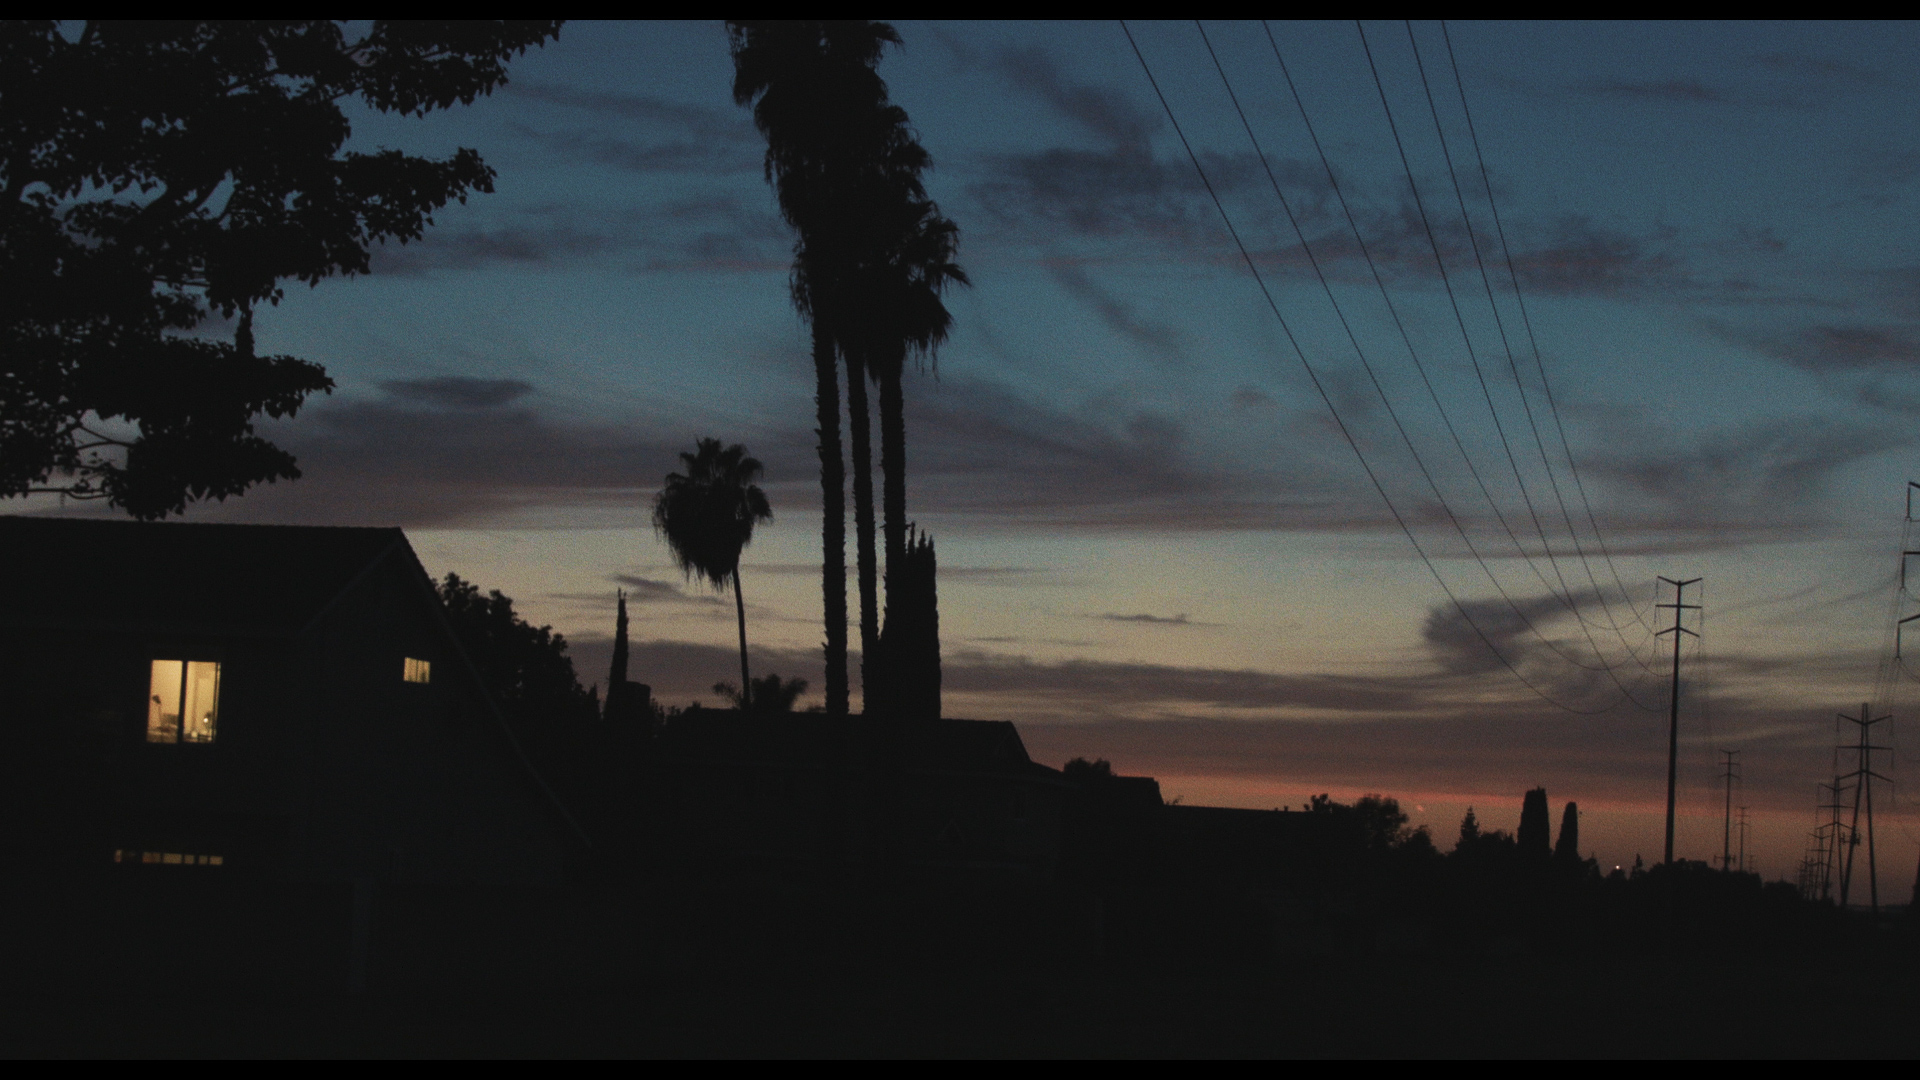 Still from Three Worlds. Suburban Landscape